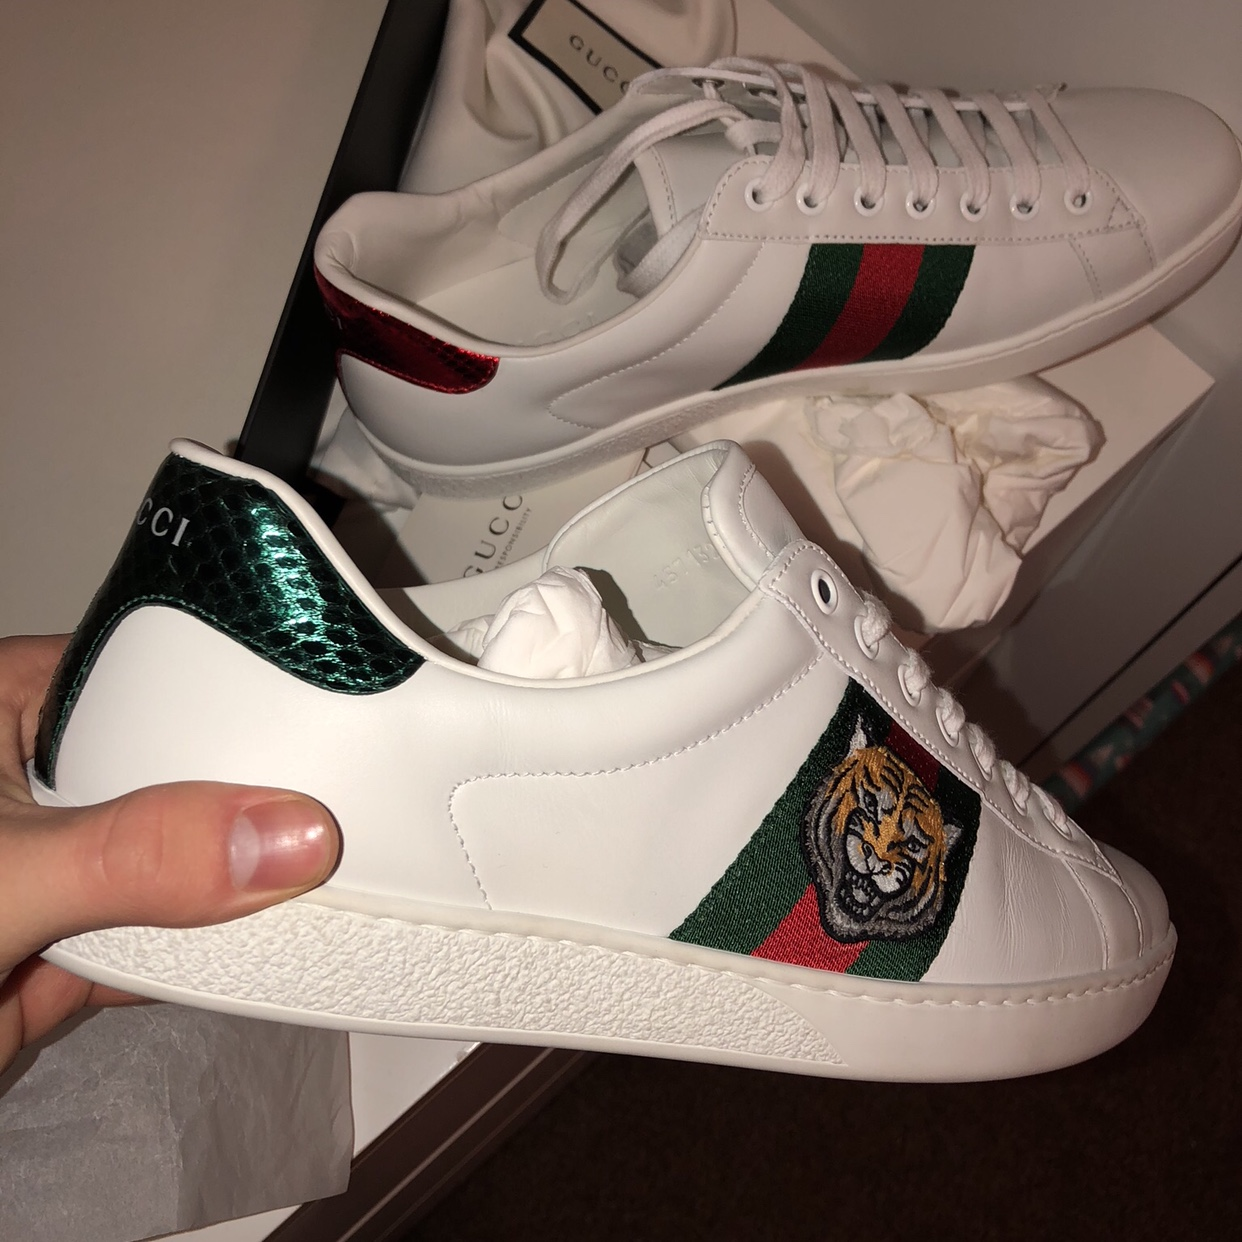 Size 8 Gucci Ace Sneakers Recipts